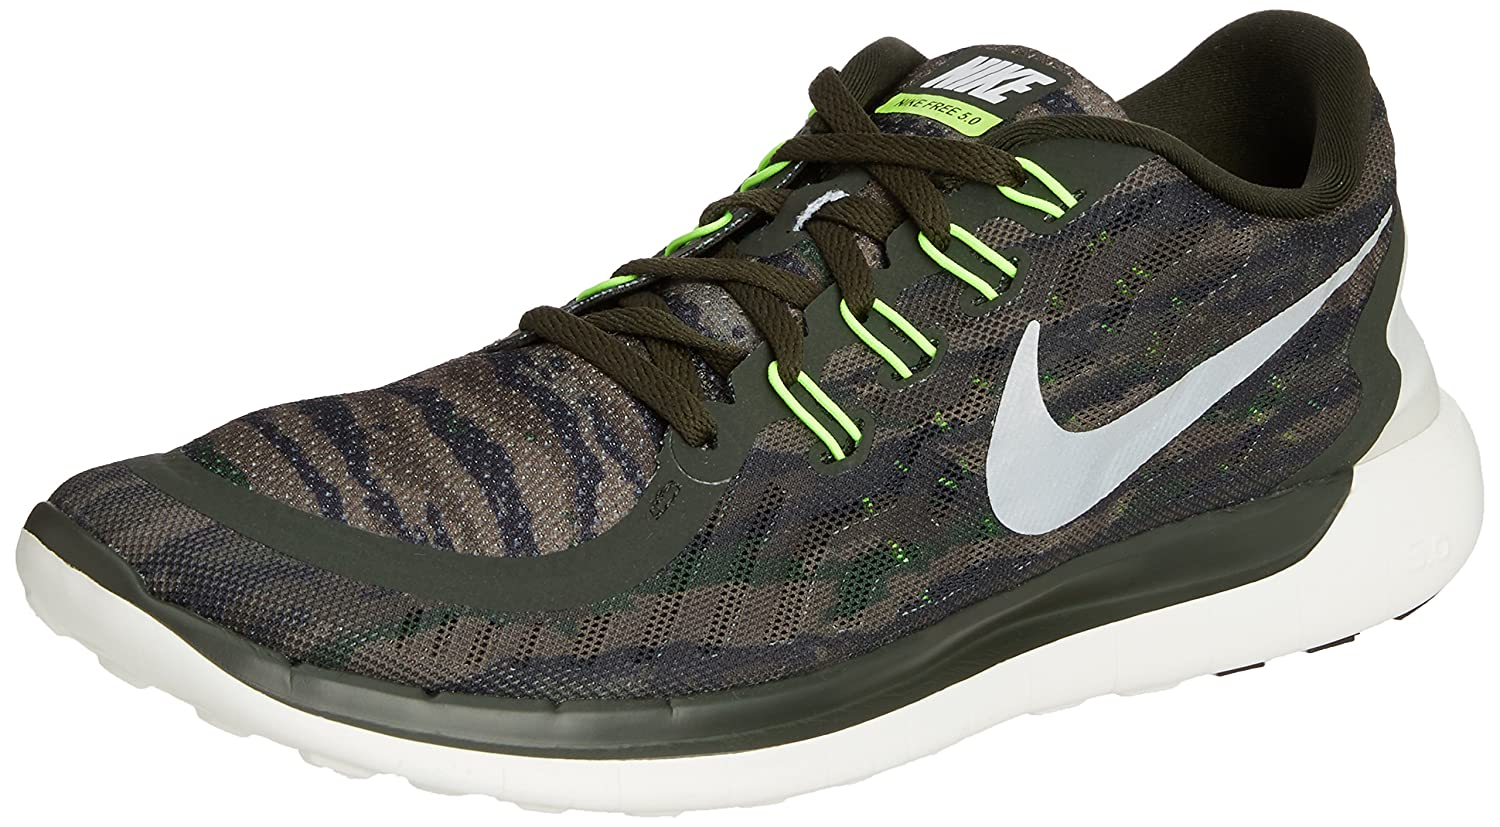 online store 1ddf8 9e774 Nike Free 5.0 Print, Men s Training Running Shoes, Multicolor  (Sequoia Turbo Green Crystal Green Summit White 301), 9 UK (44 EU)   Amazon.co.uk  Shoes   Bags